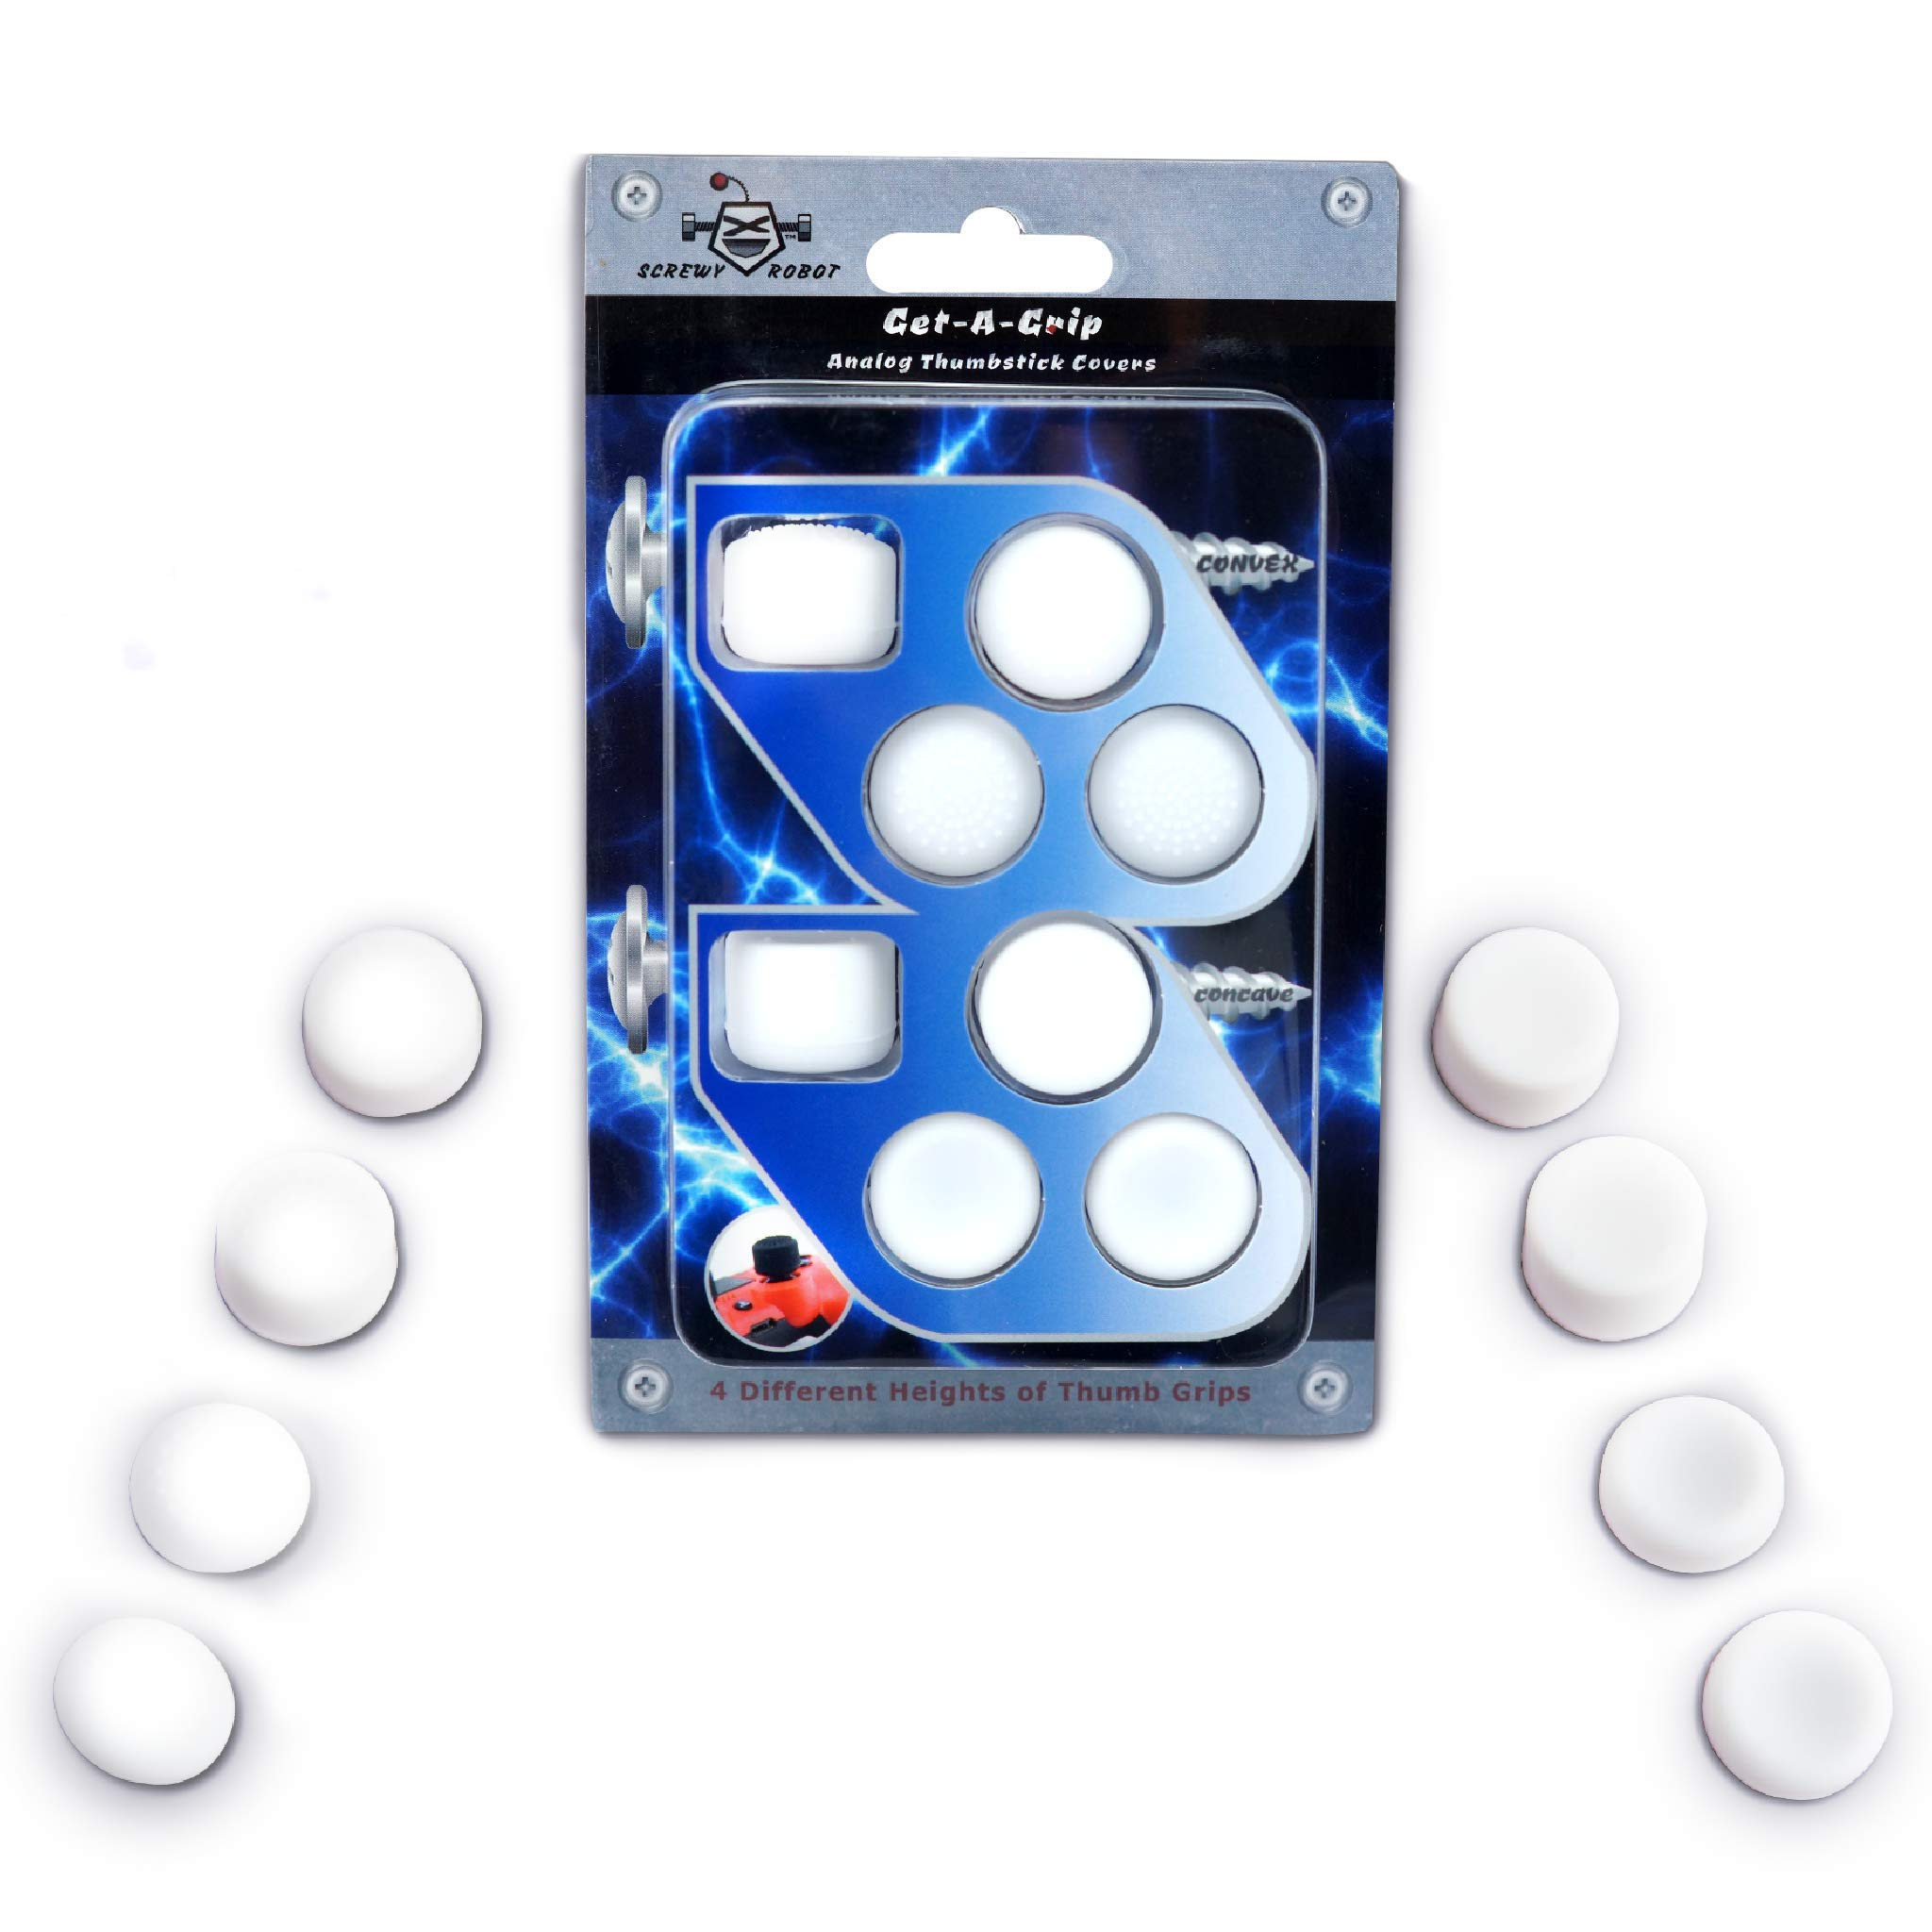 Get-A-Grip Analog Thumbstick Grip Covers for PS4/PS3 by ScrewyRobot (White) by ScrewyRobot